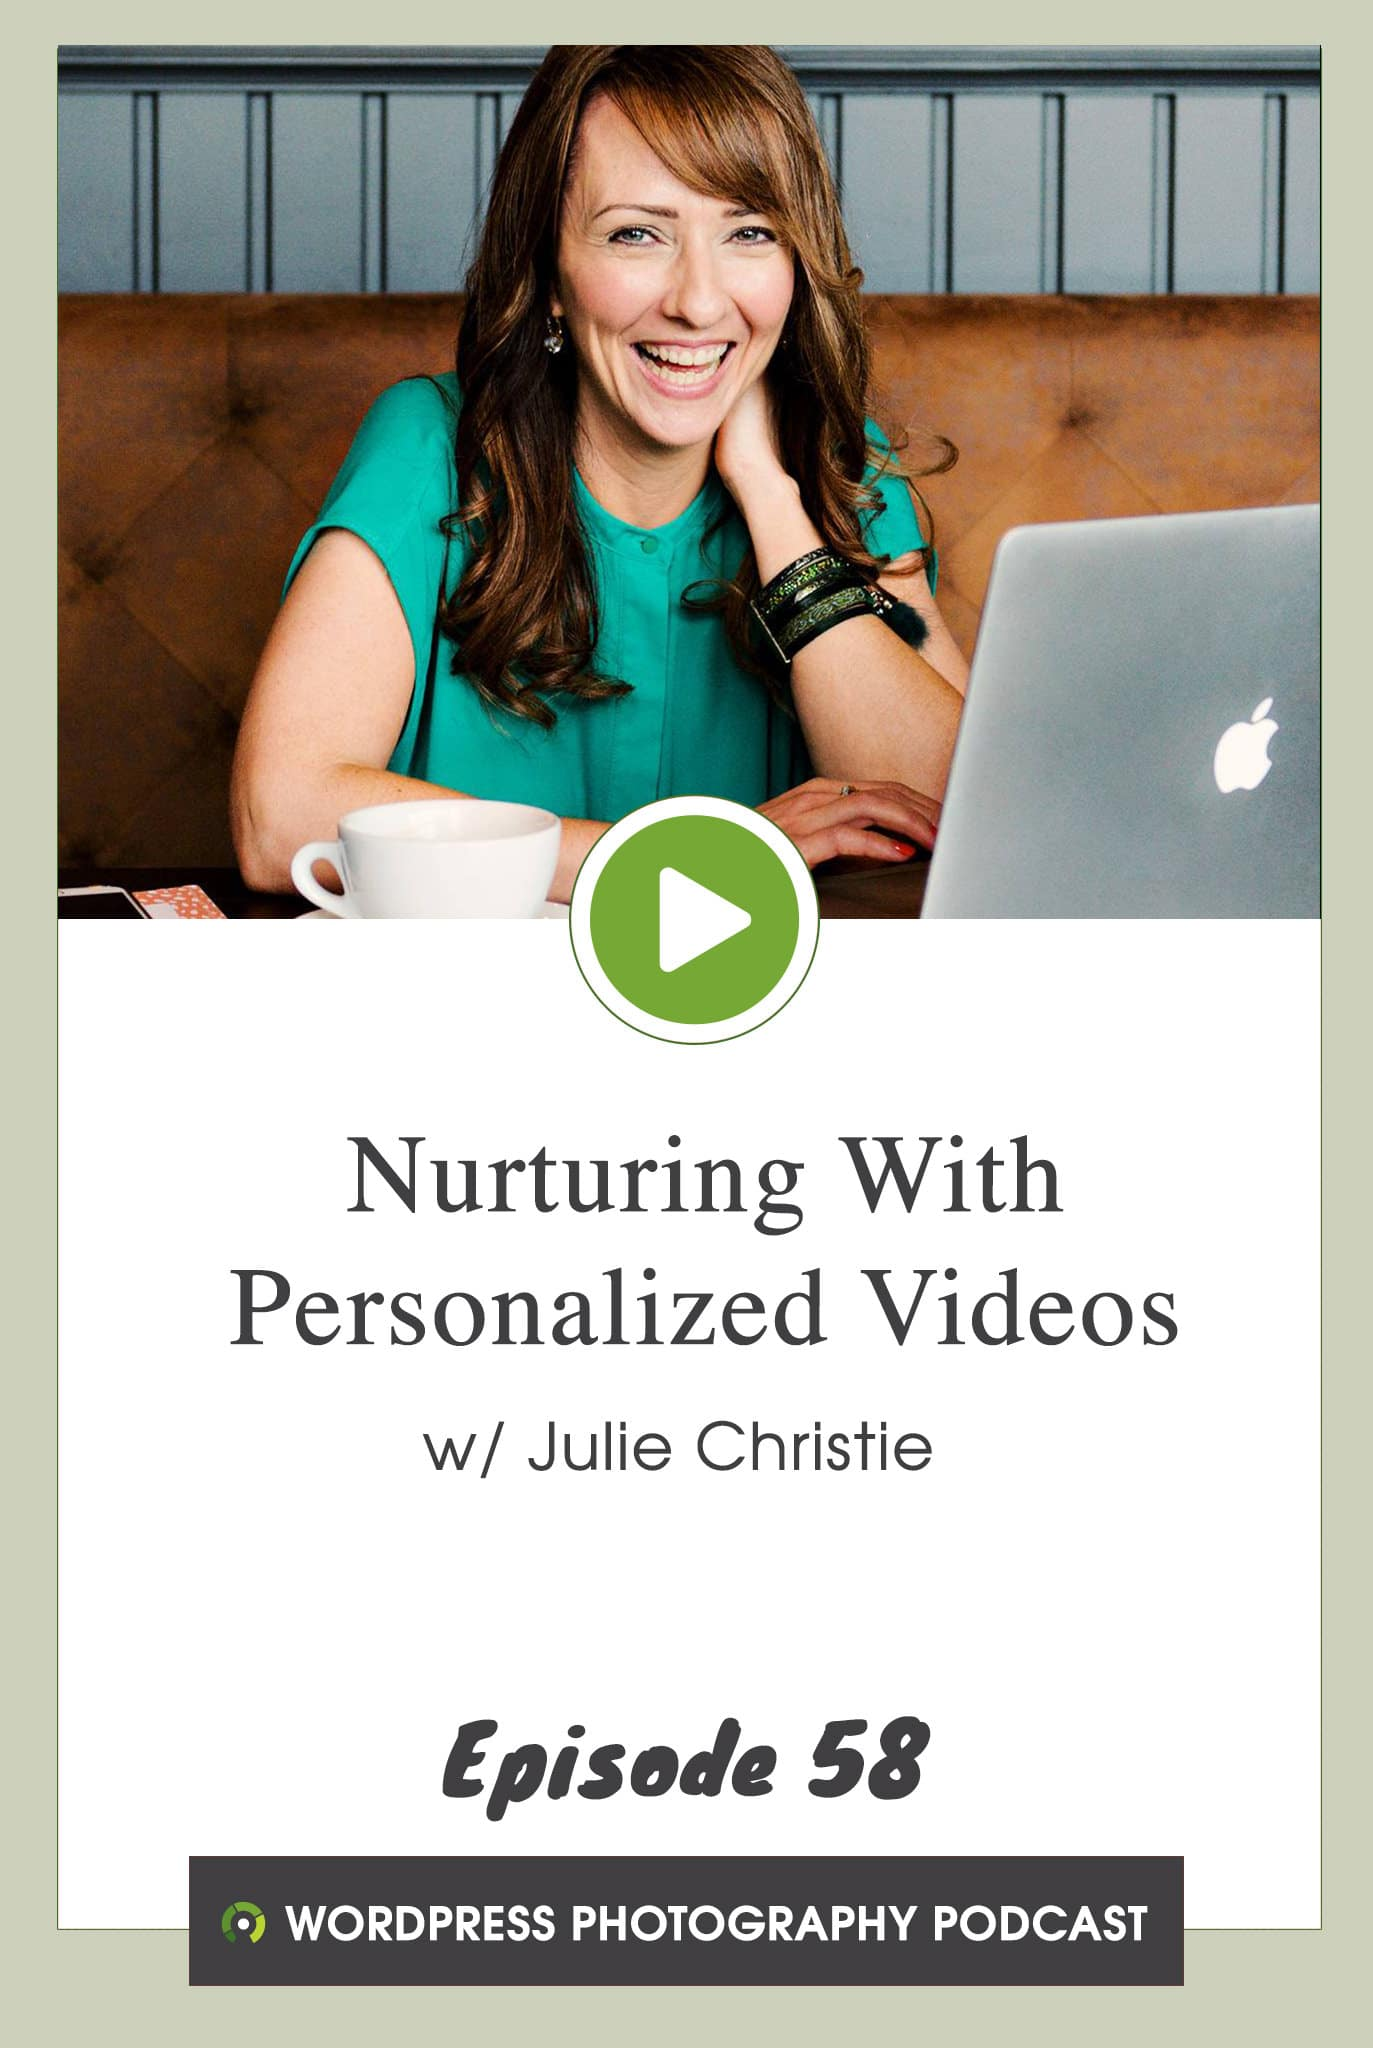 Episode 58 – Nurturing With Personalized Videos w/ Julie Christie